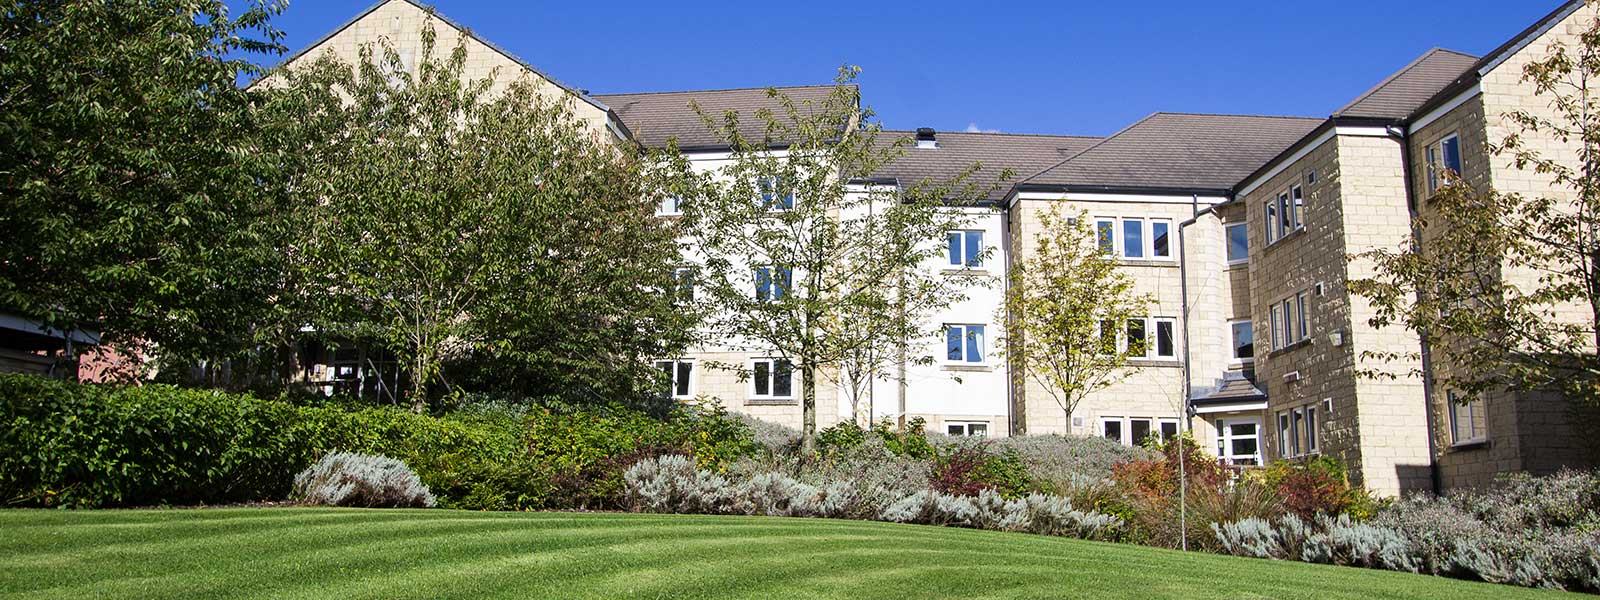 Image of campus accommodation buildings